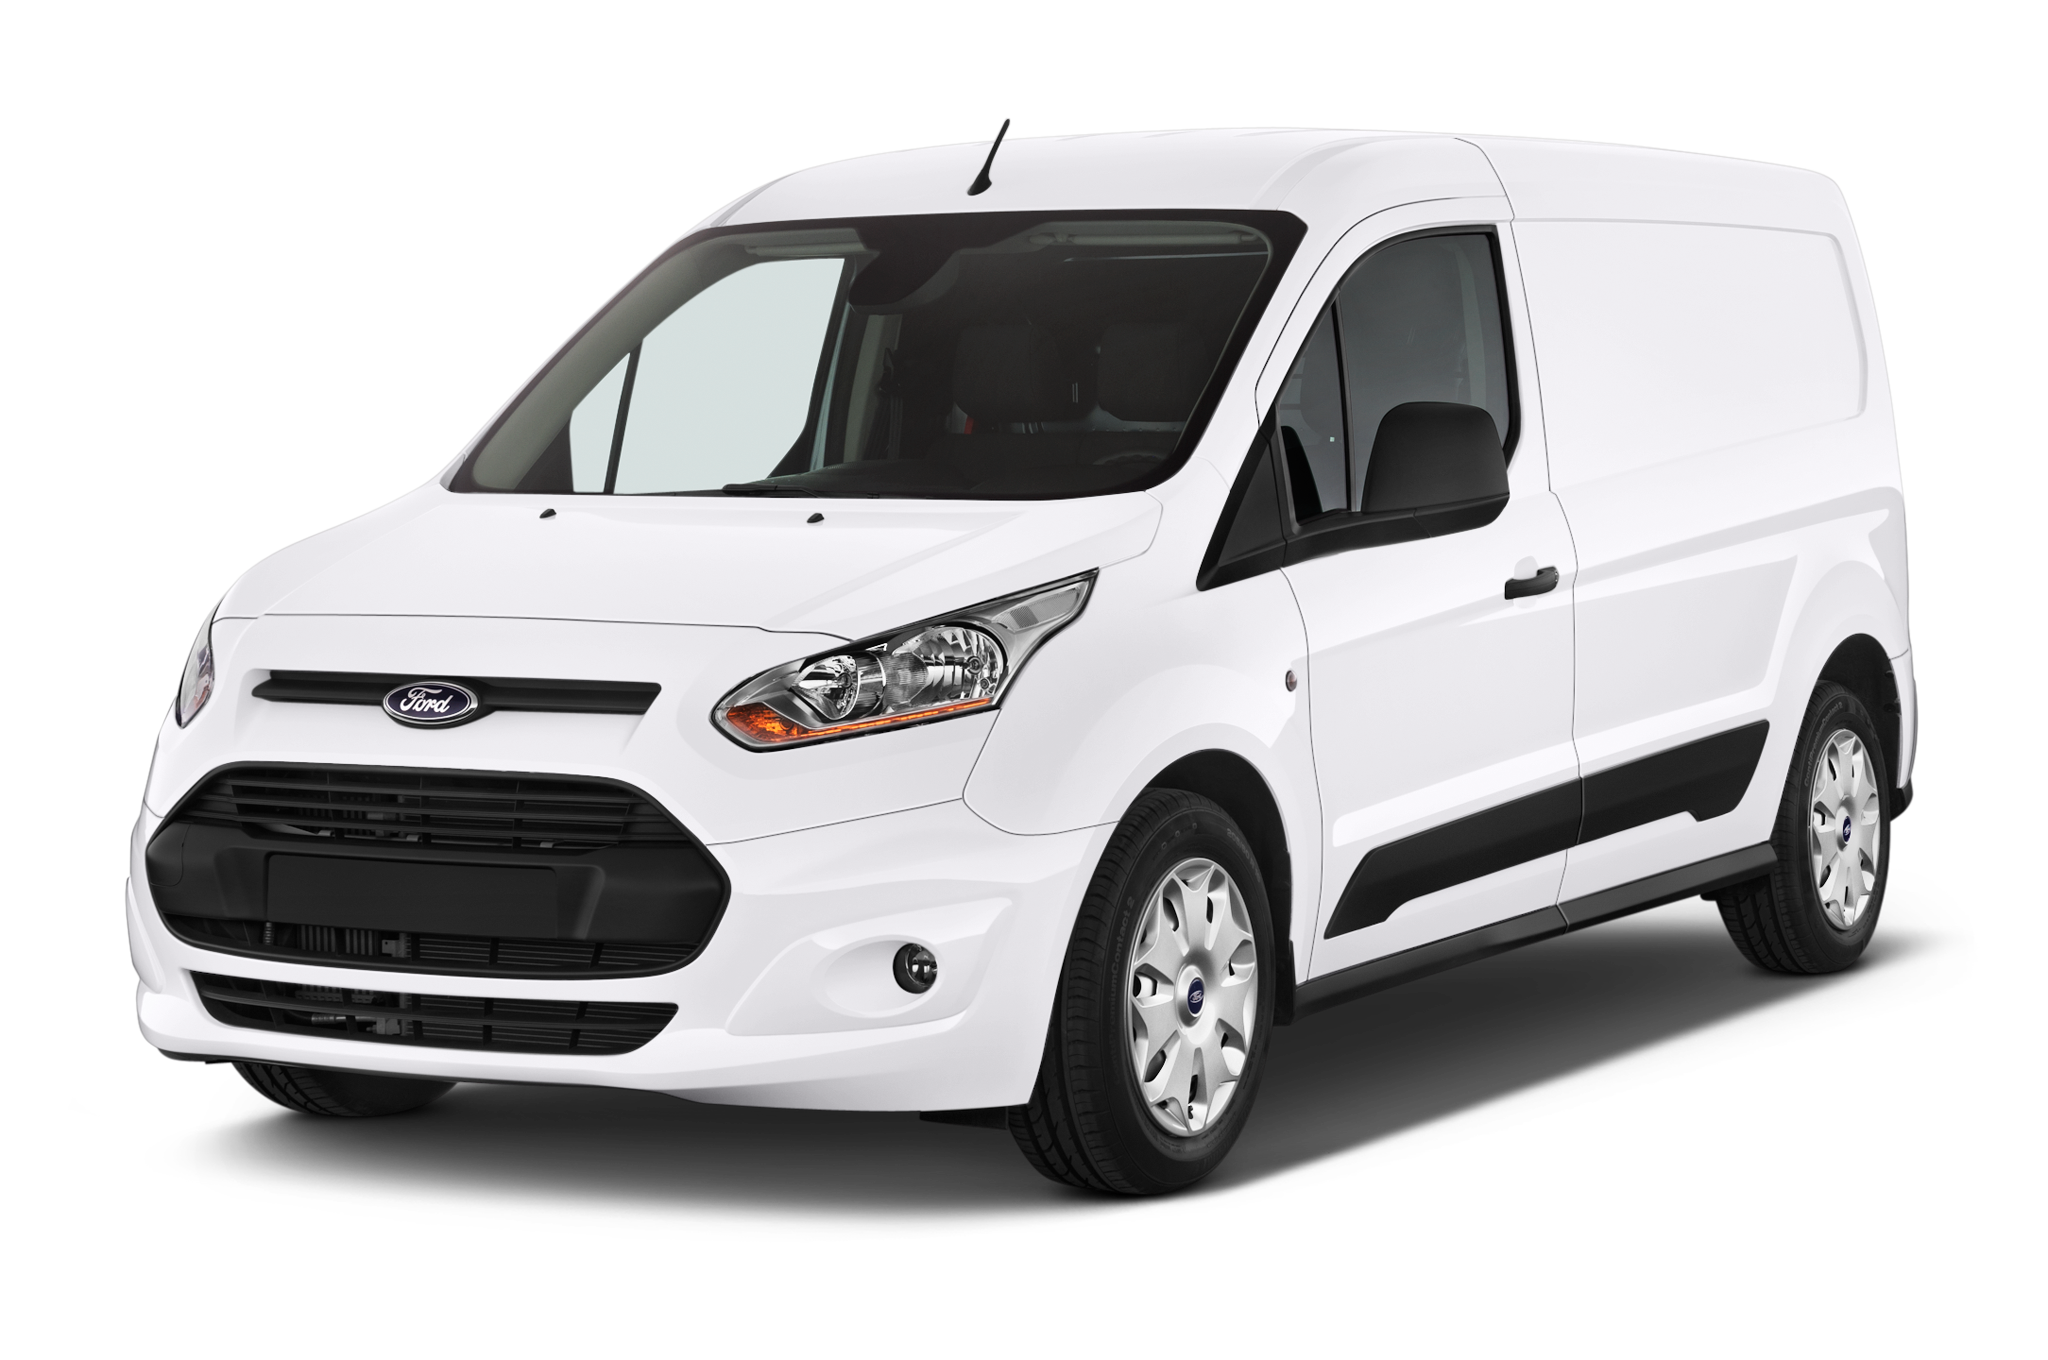 2016-ford-transit-connect-xlt-mini-mpv-angular-front